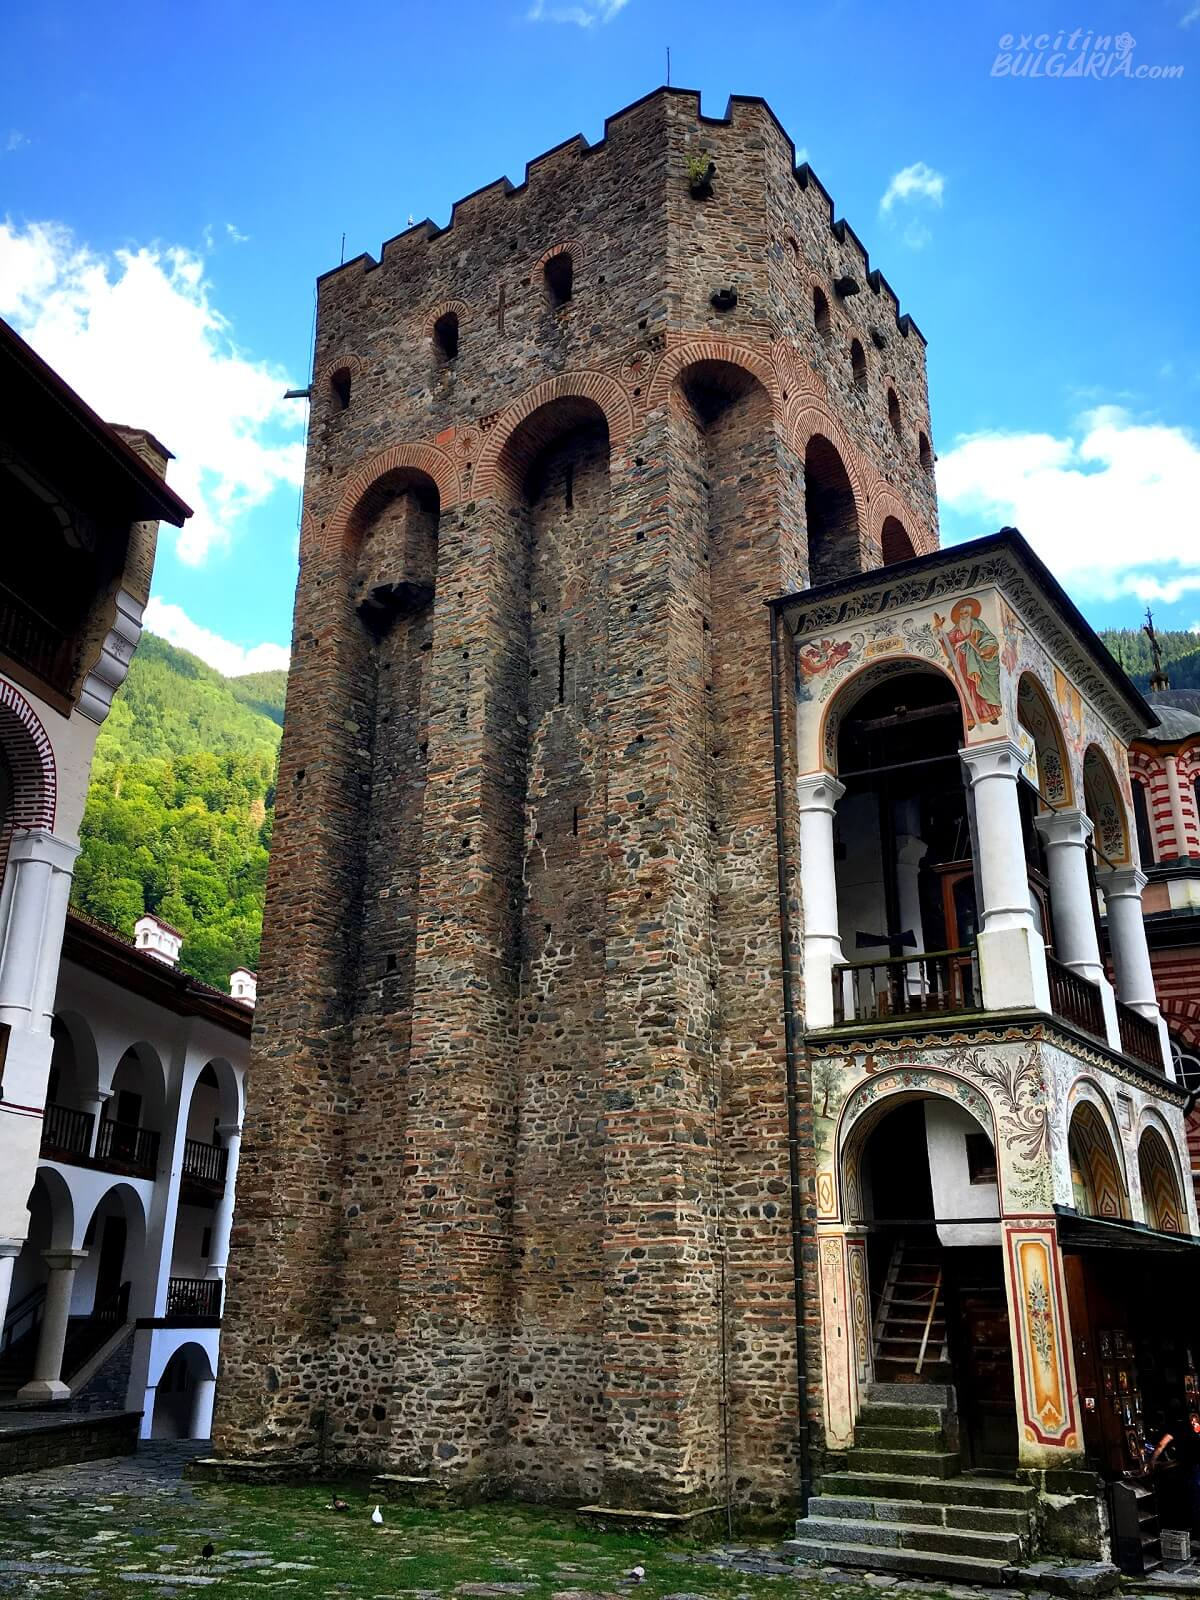 Hrelyo's tower in the Rila Monastery